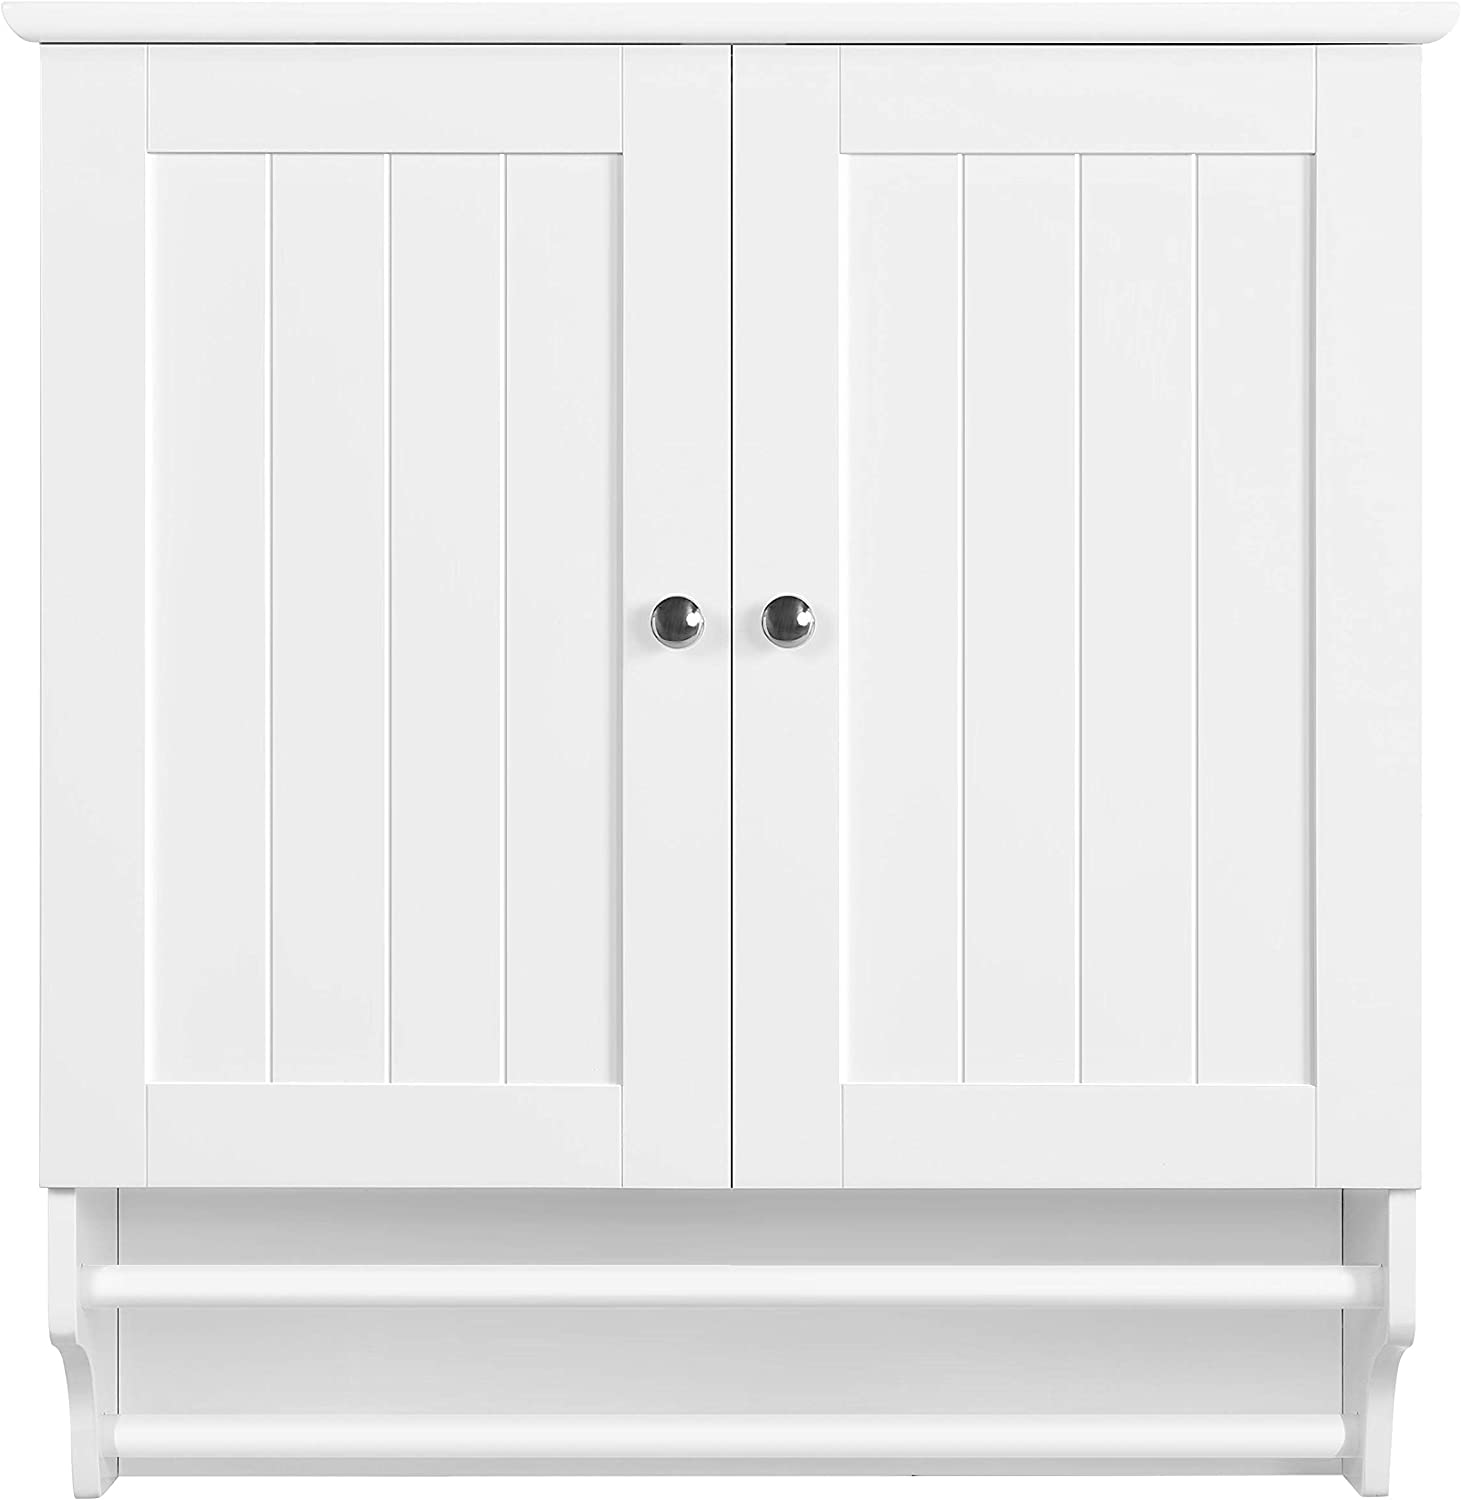 Amazon Com Topeakmart Bathroom Kitchen Wall Storage Cabinet Cupboard With Double Doors And Adjustable Shelf Wall Mounted Medicine Cabinet Hanging Organizer White Home Kitchen